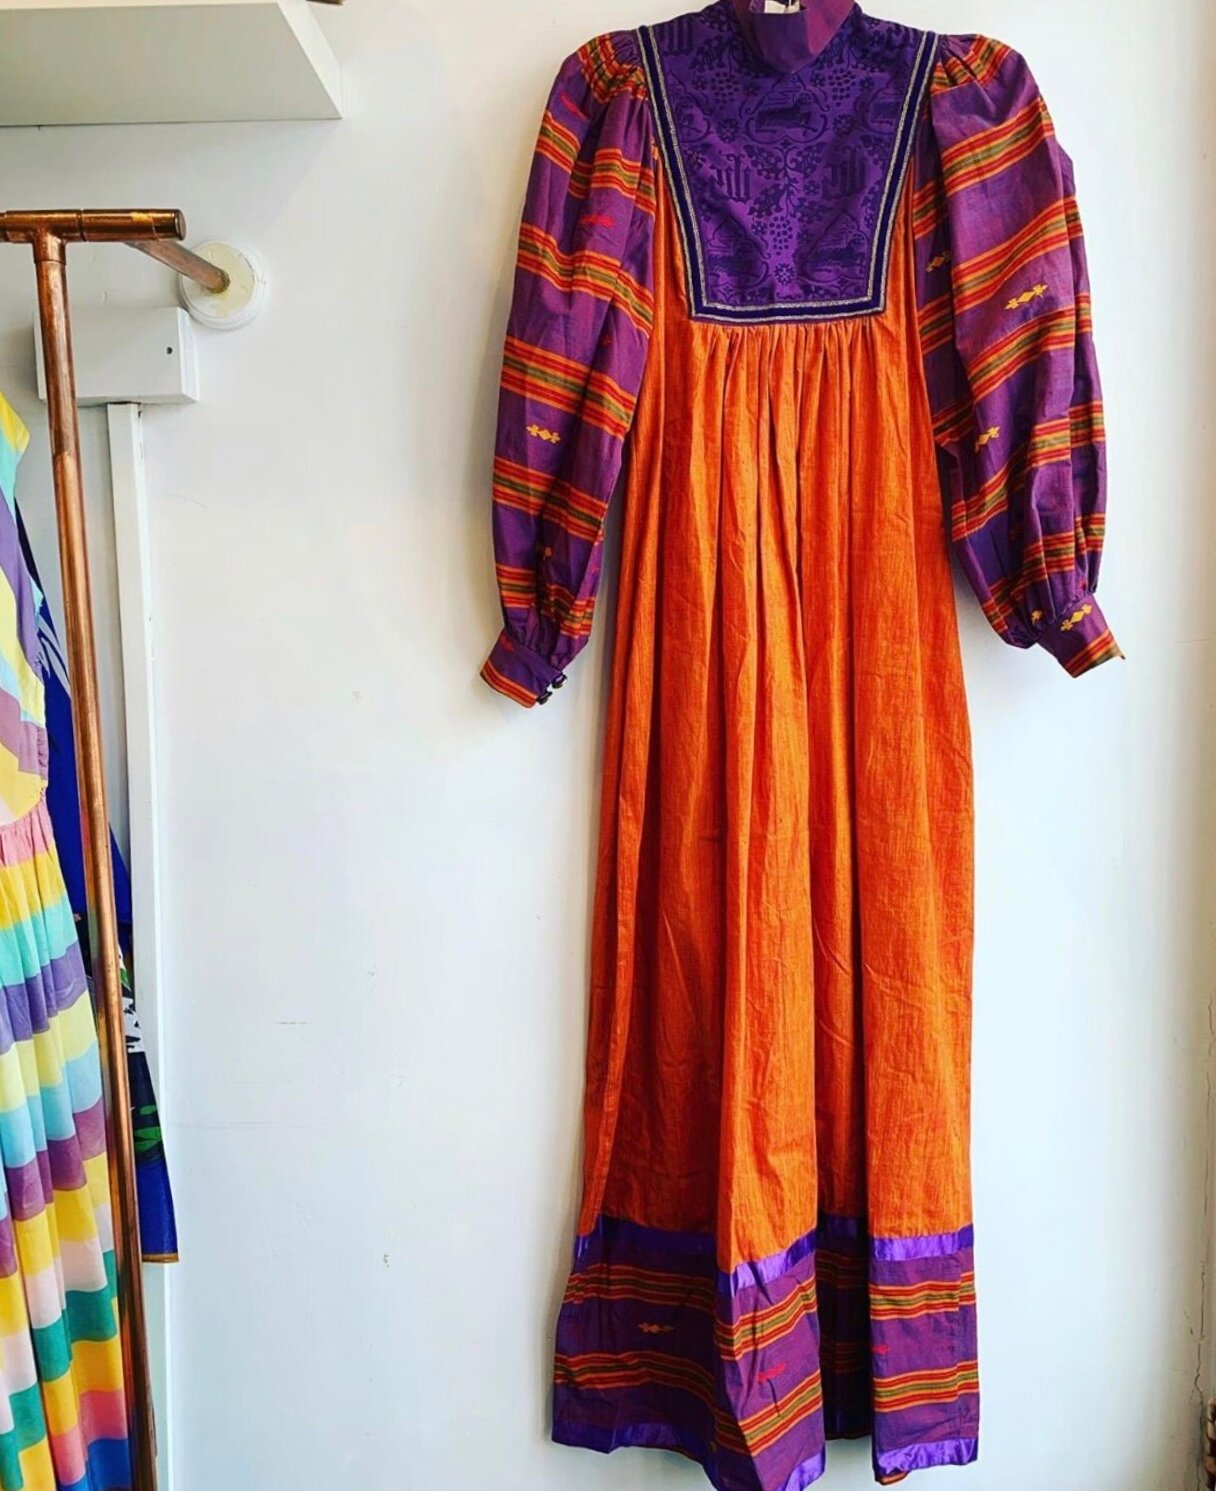 1970s dress from Brighton based  Hope & Harlequin